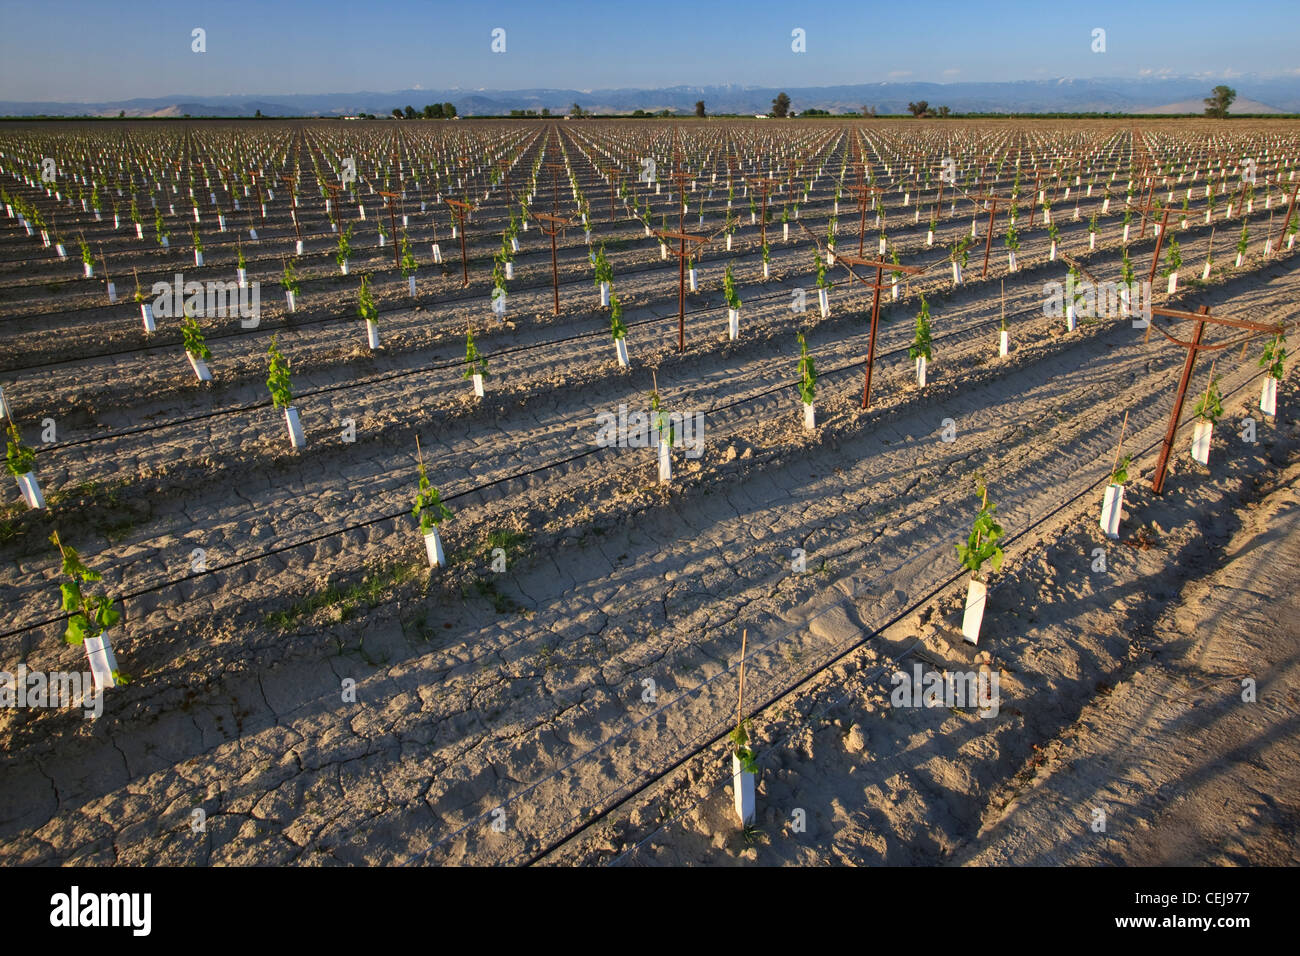 Agriculture - A young table grape vineyard utilizing an overhead trellis system, drip irrigation and planting sleeves - Stock Image